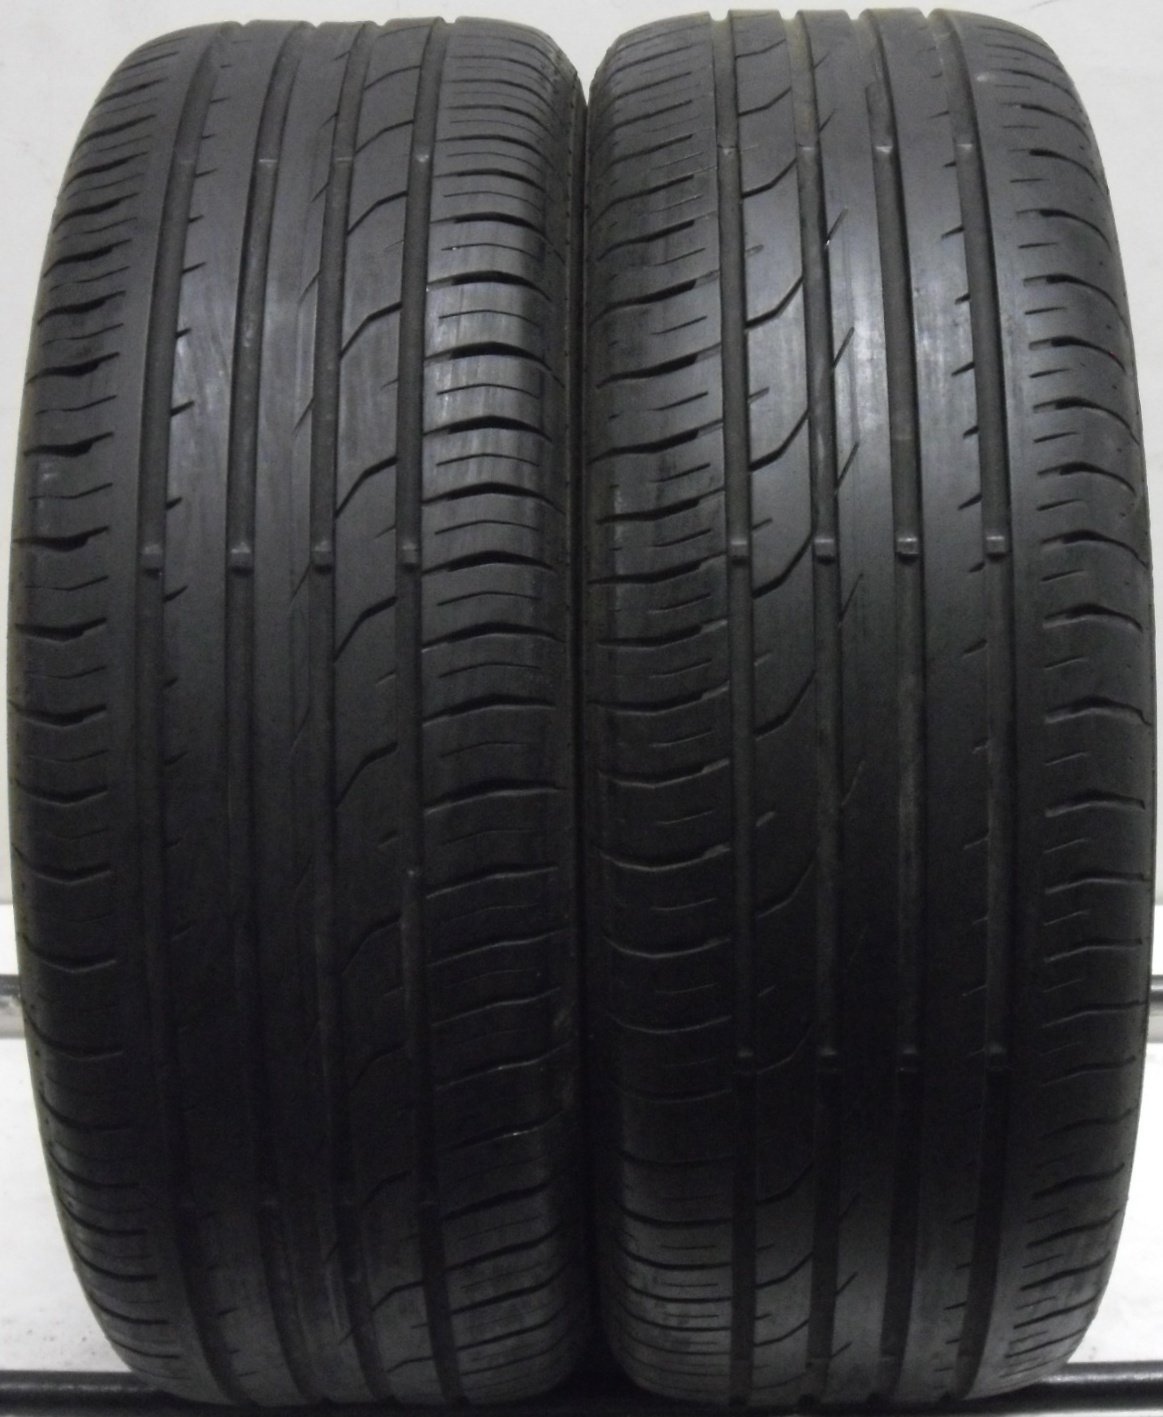 2 2155517 Continental 215 55 17 Part Worn Car Tyres Premium Contact 2 x2 Two 4mm to 5mm